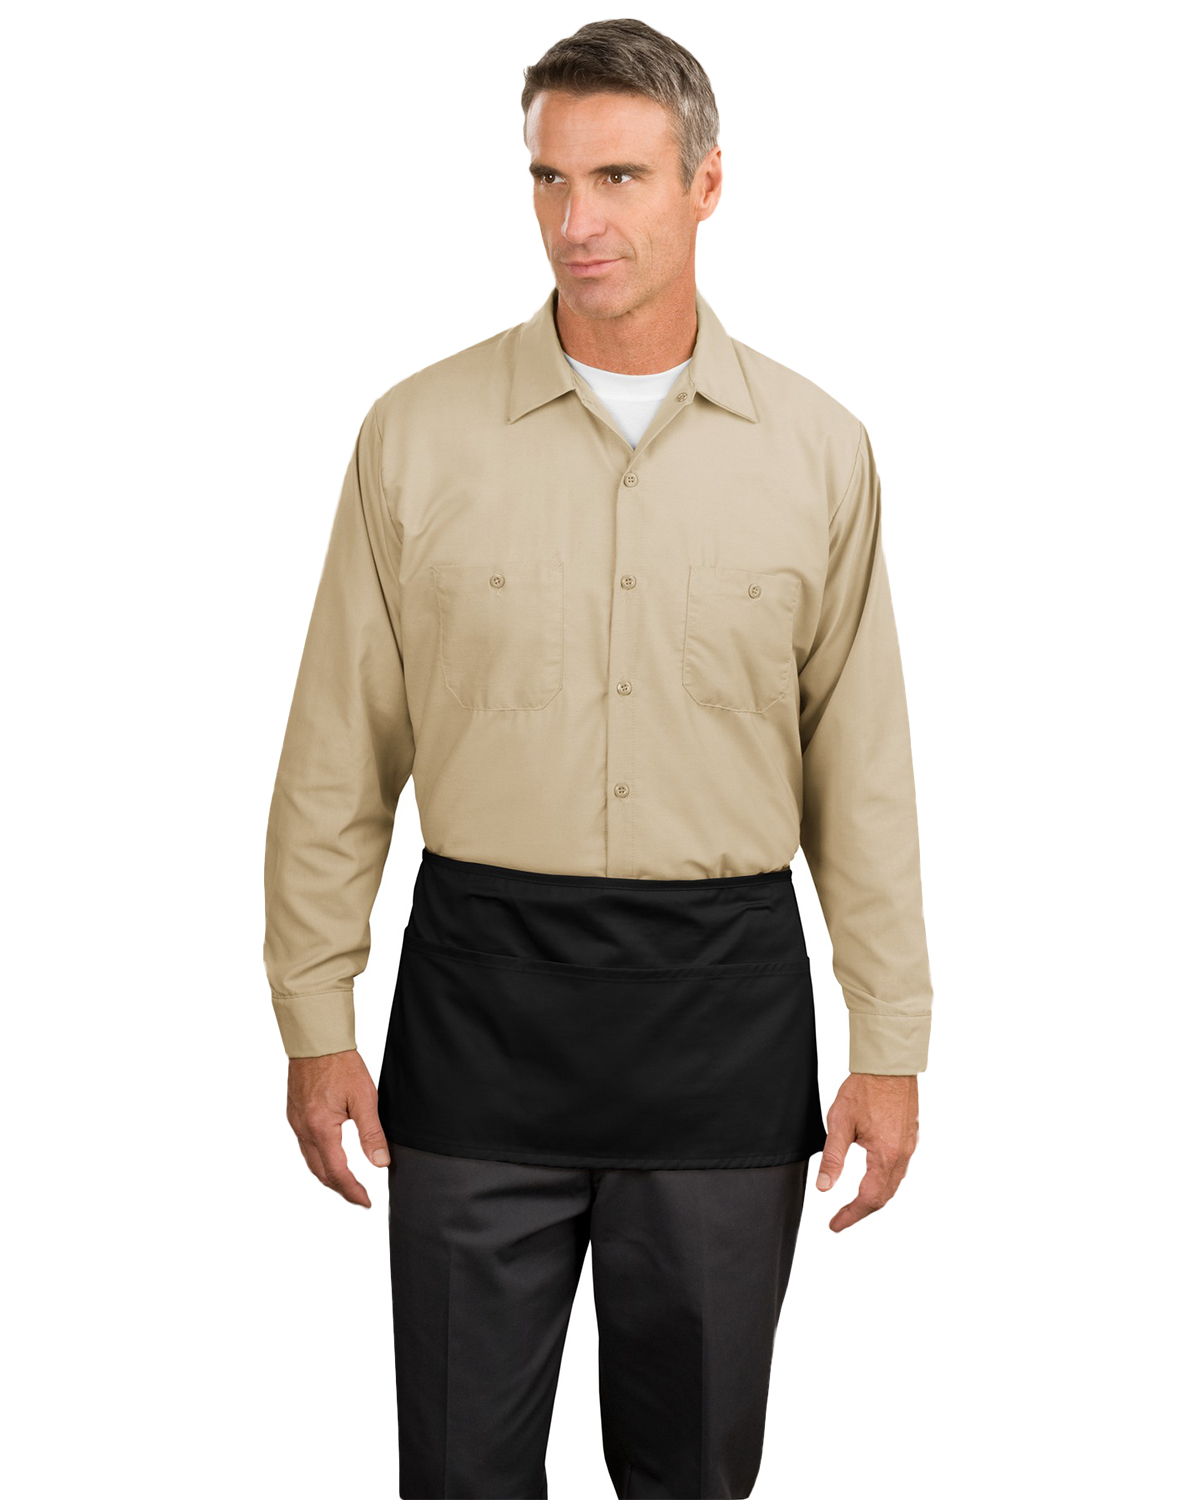 Port Authority A515 Unisex Waist Apron with Pockets at GotApparel